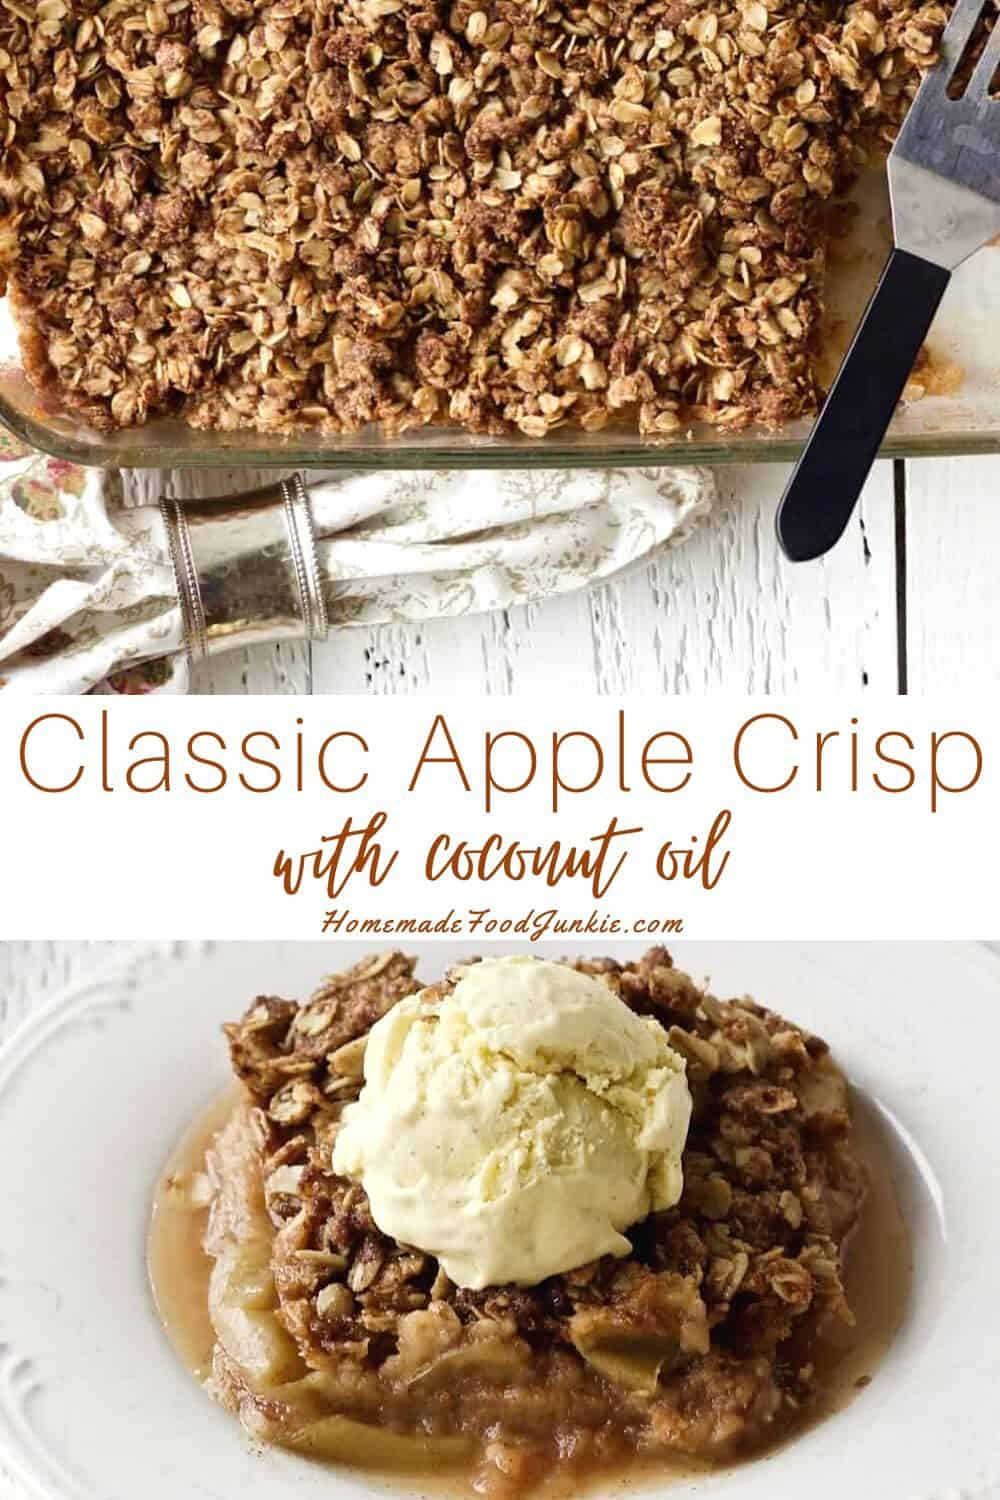 Classic apple crisp with coconut oil-pin image